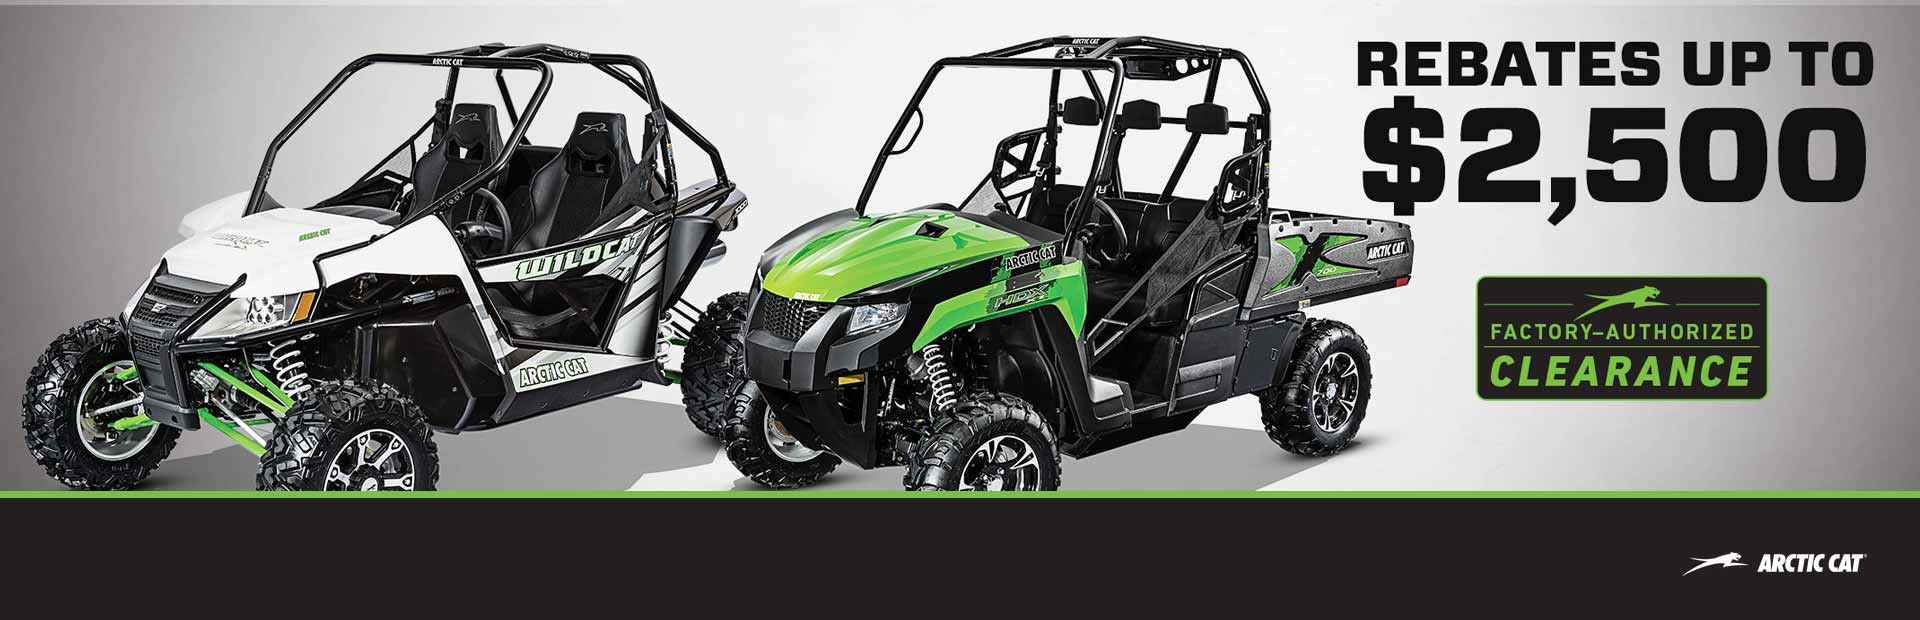 Arctic Cat: Factory Authorized Clearance on Side by Sides